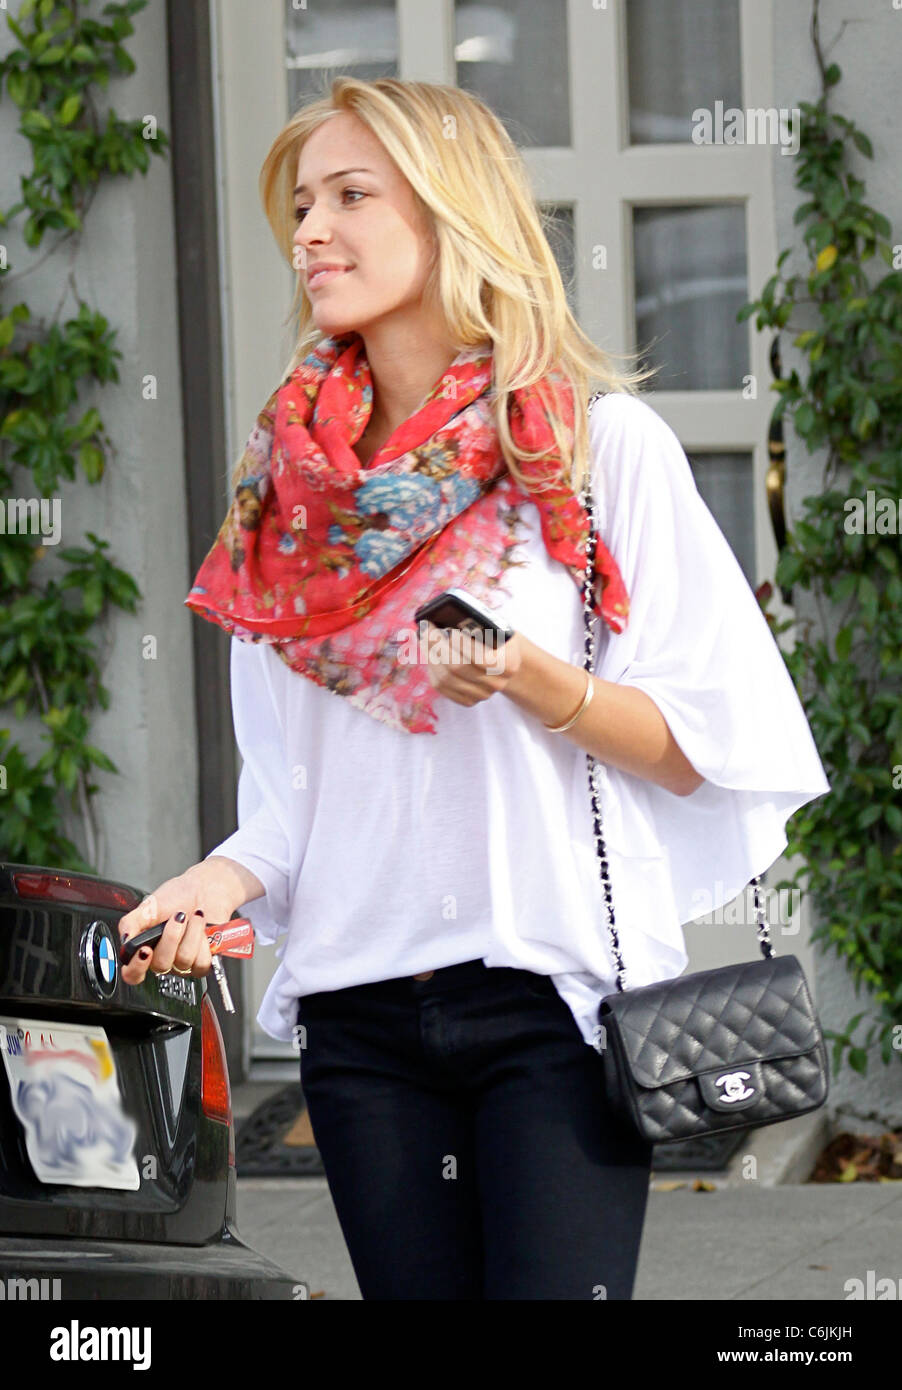 6cd23bd95a83ea Reality star Kristin Cavallari from the tv show 'The Hills', leaving Neil  George